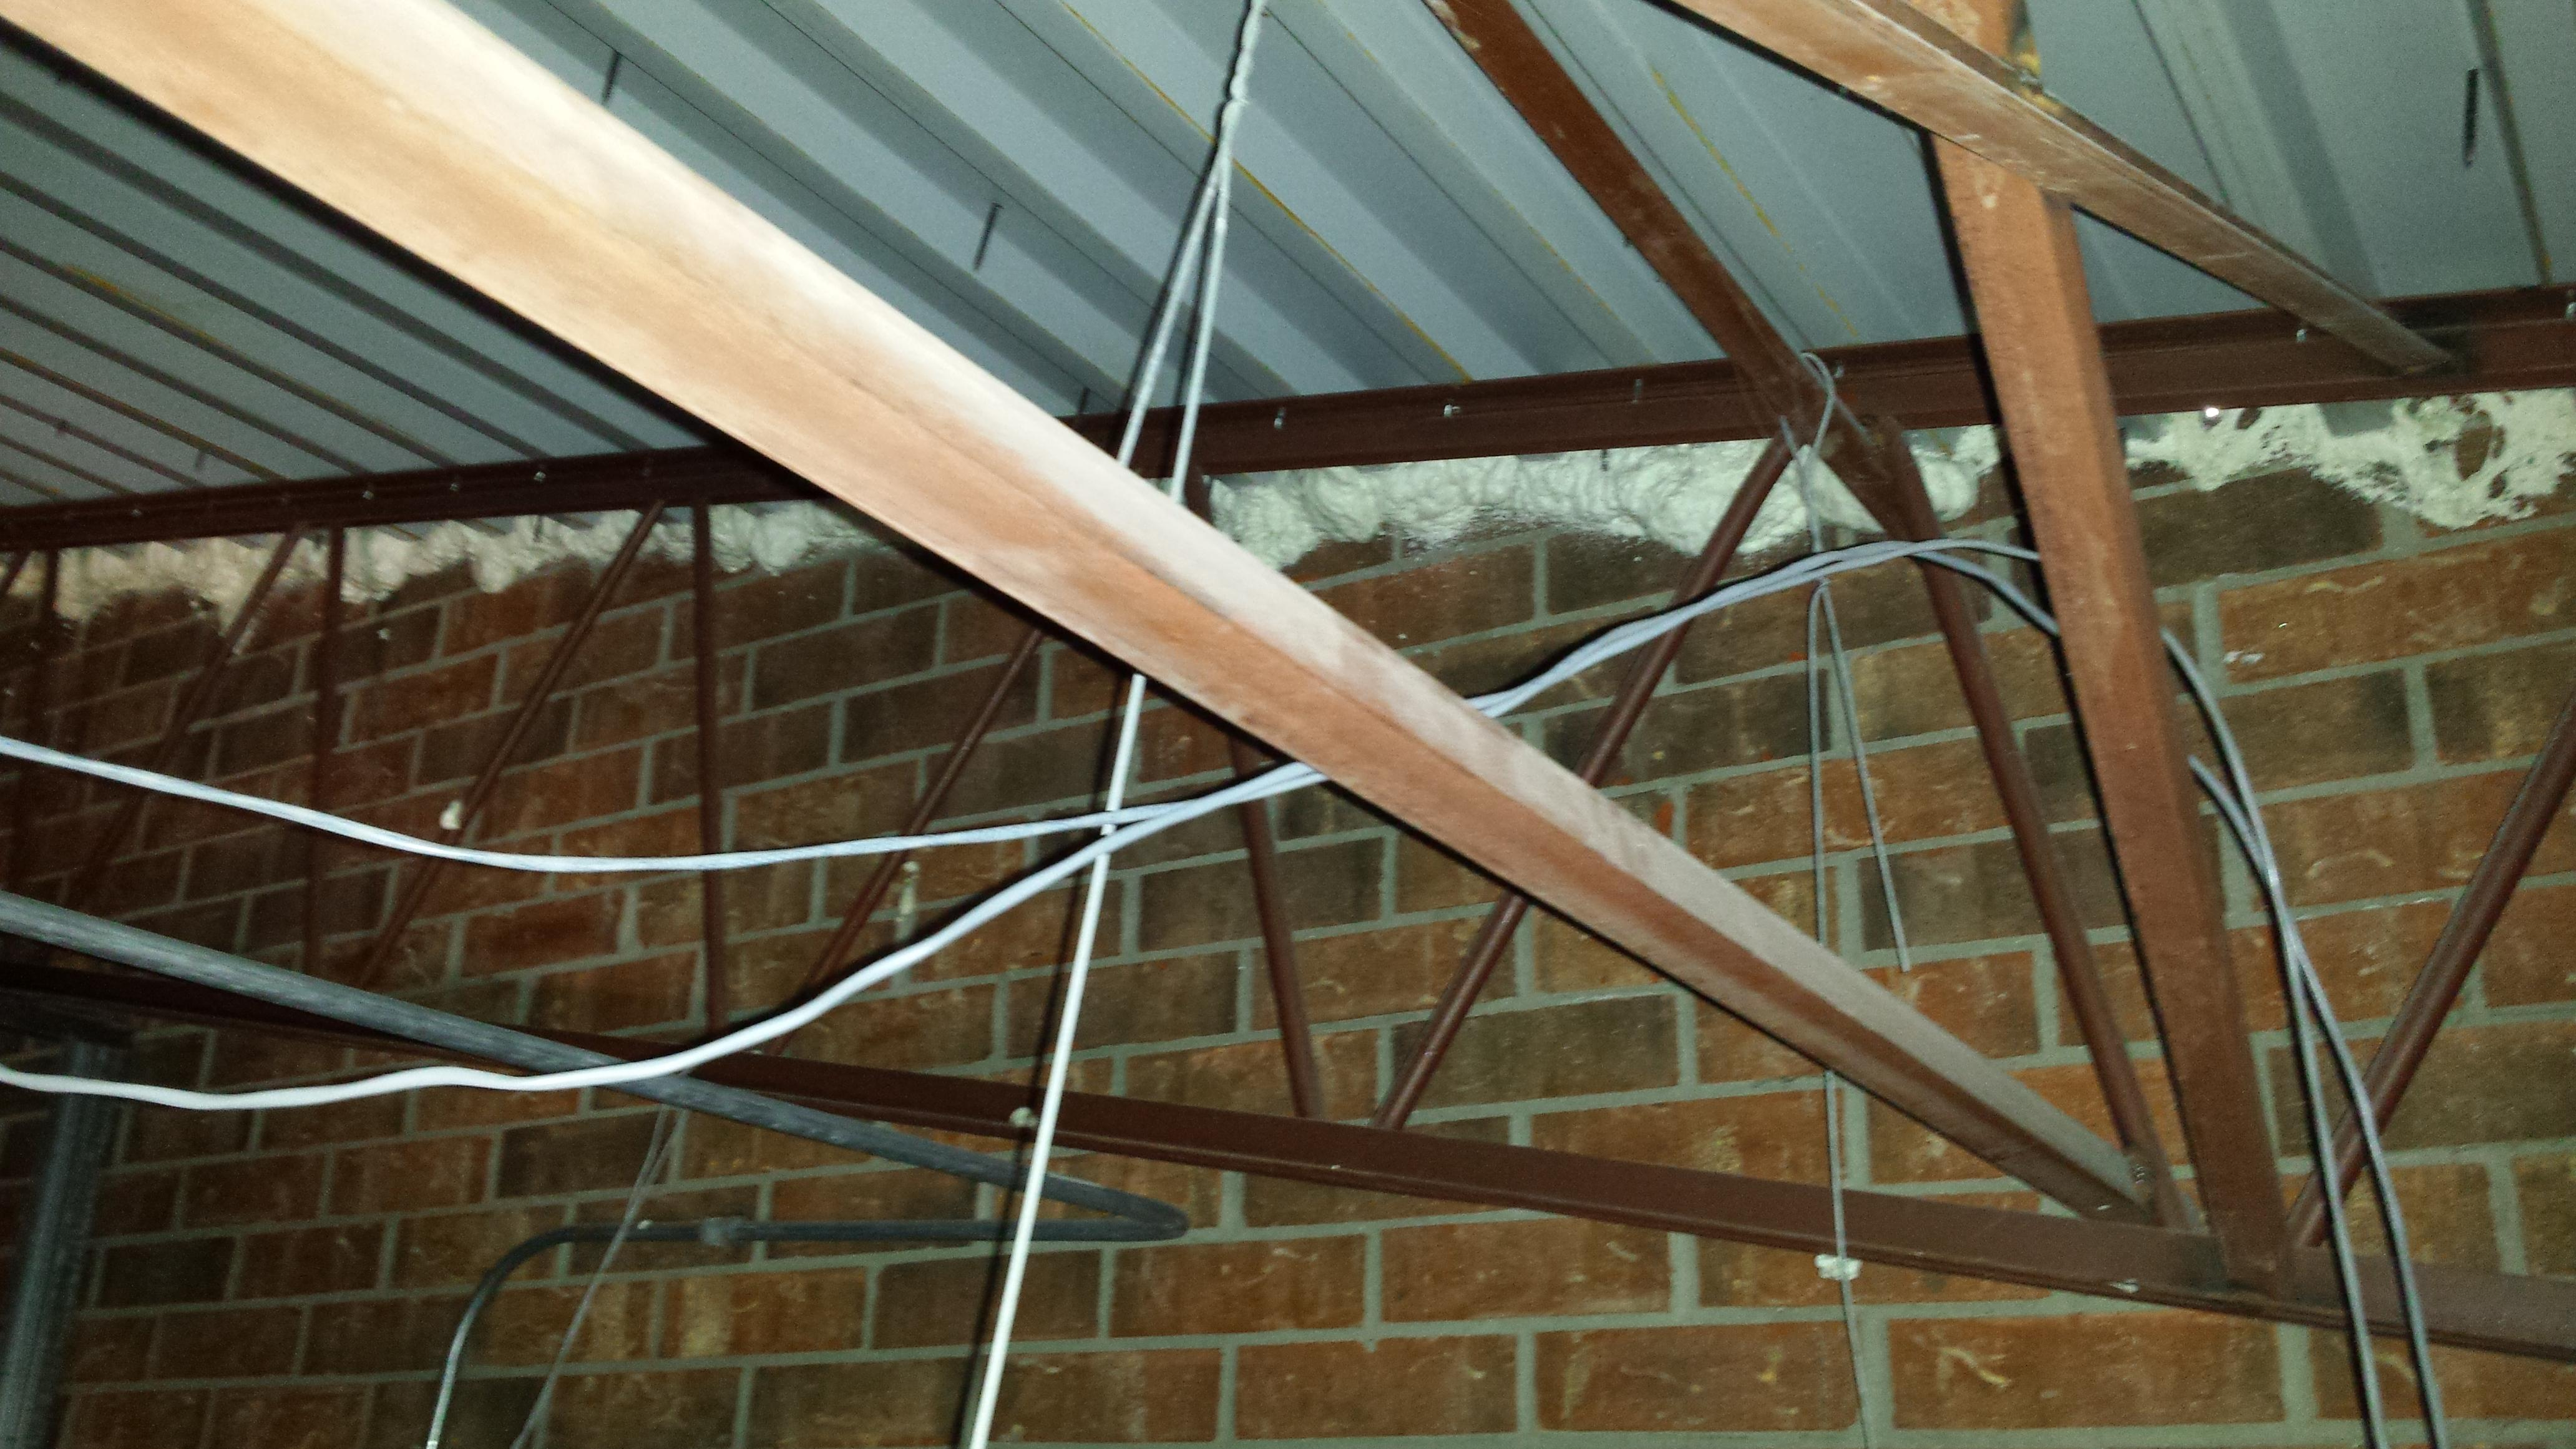 Roof To Wall Juncture After Air Sealing